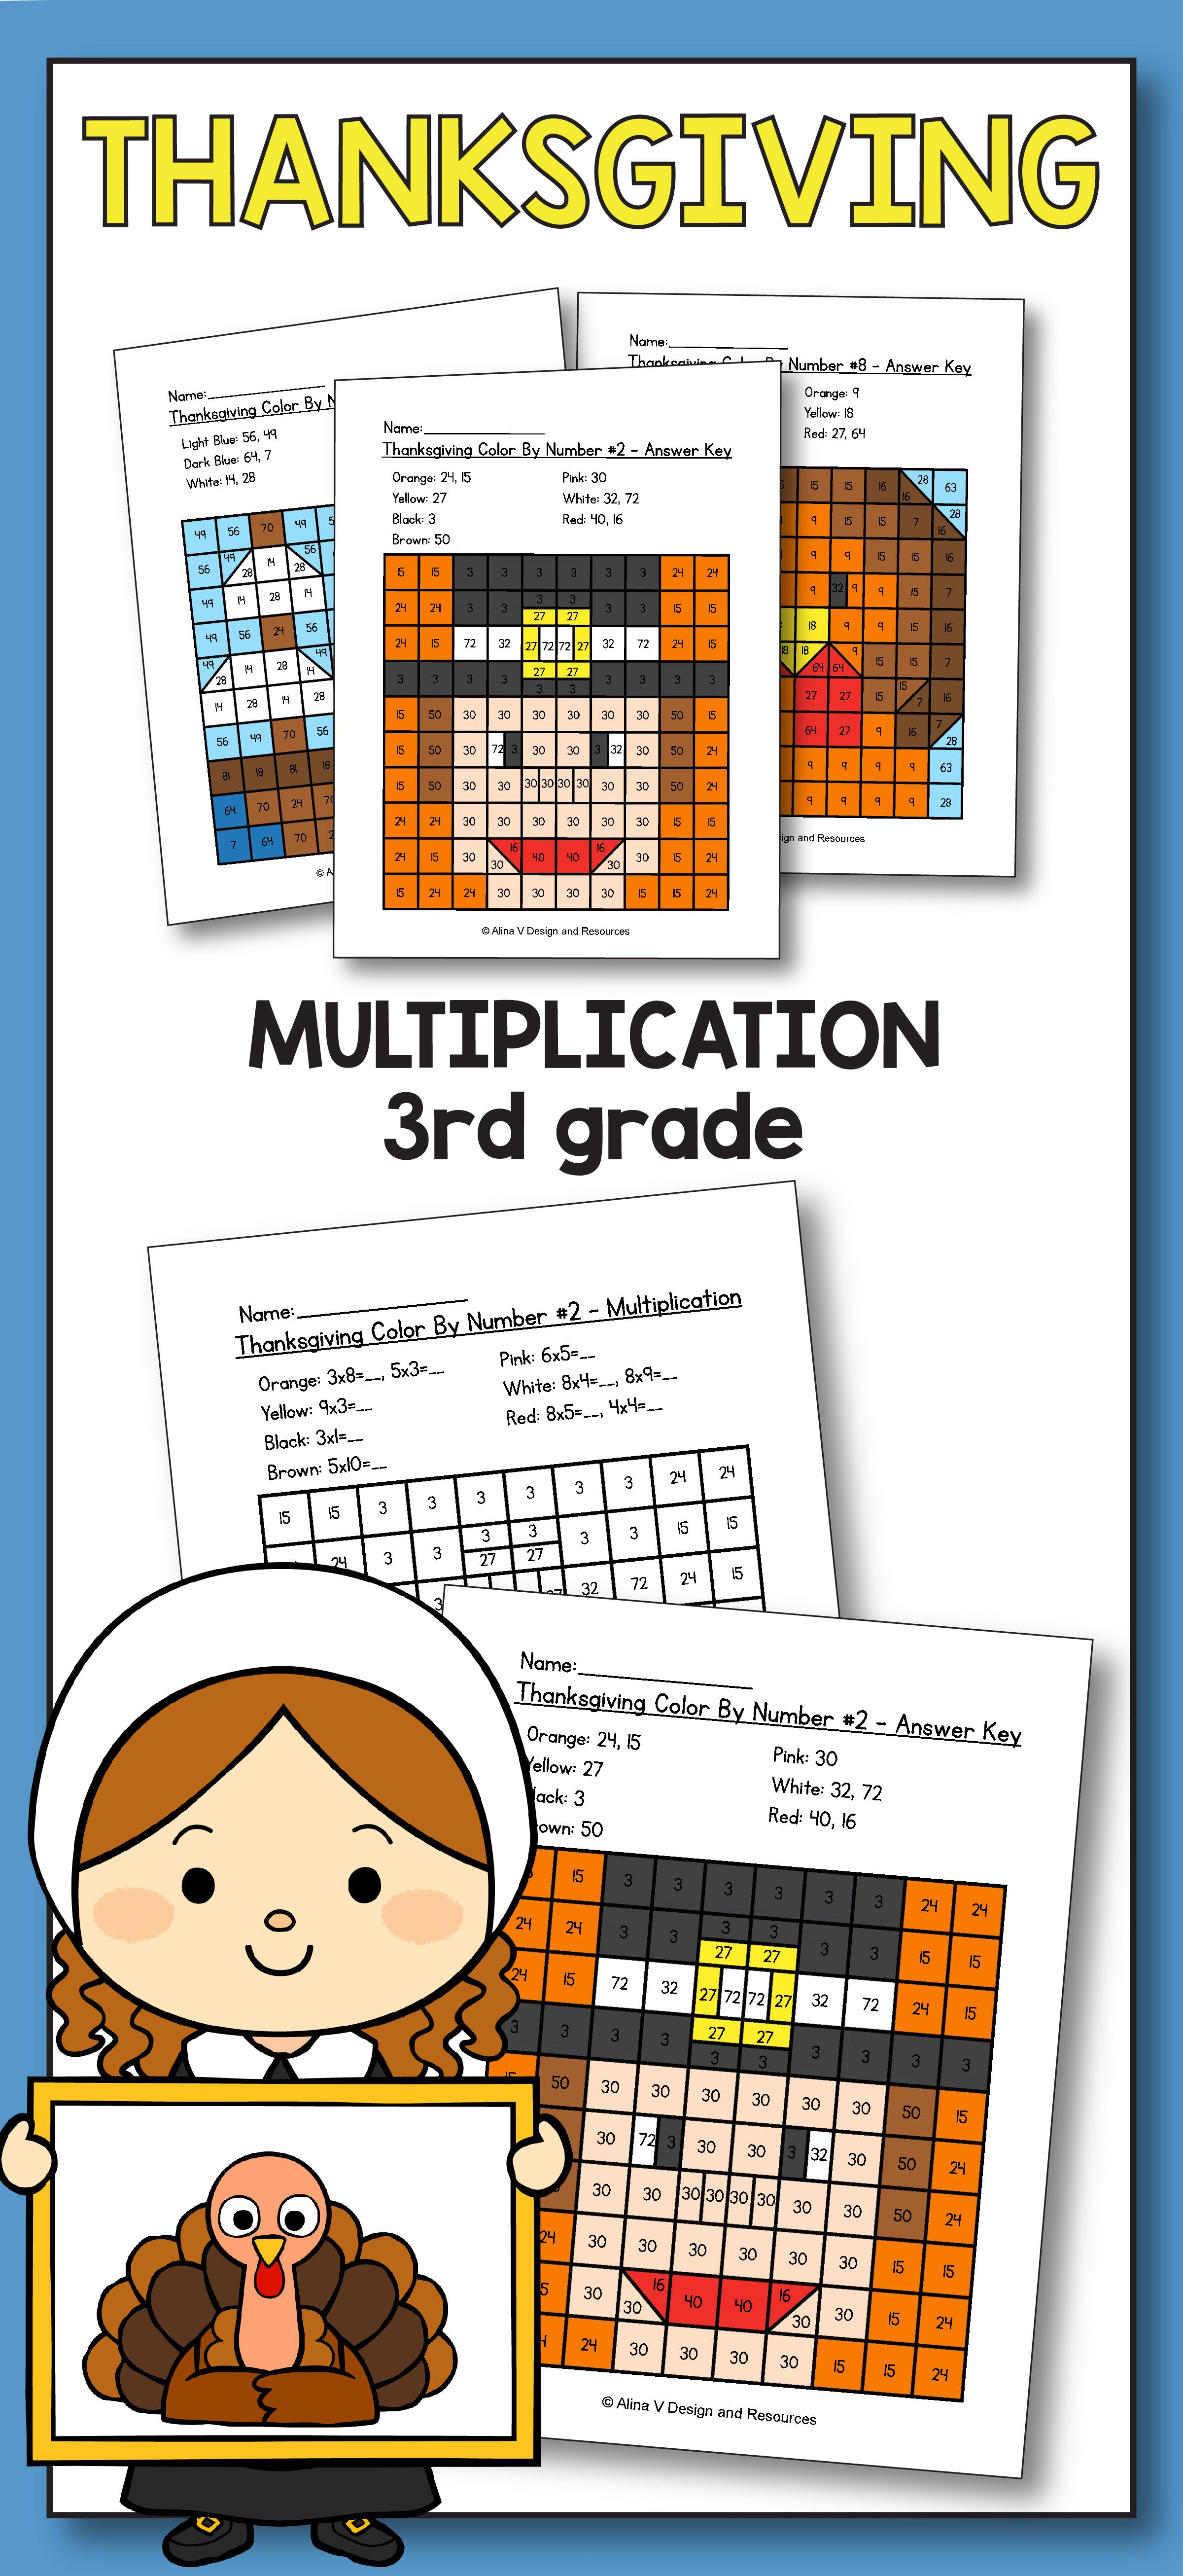 Thanksgiving Multiplication Math Worksheets for 3rd grade kids is fun with  the…   Thanksgiving math worksheets [ 5224 x 2400 Pixel ]